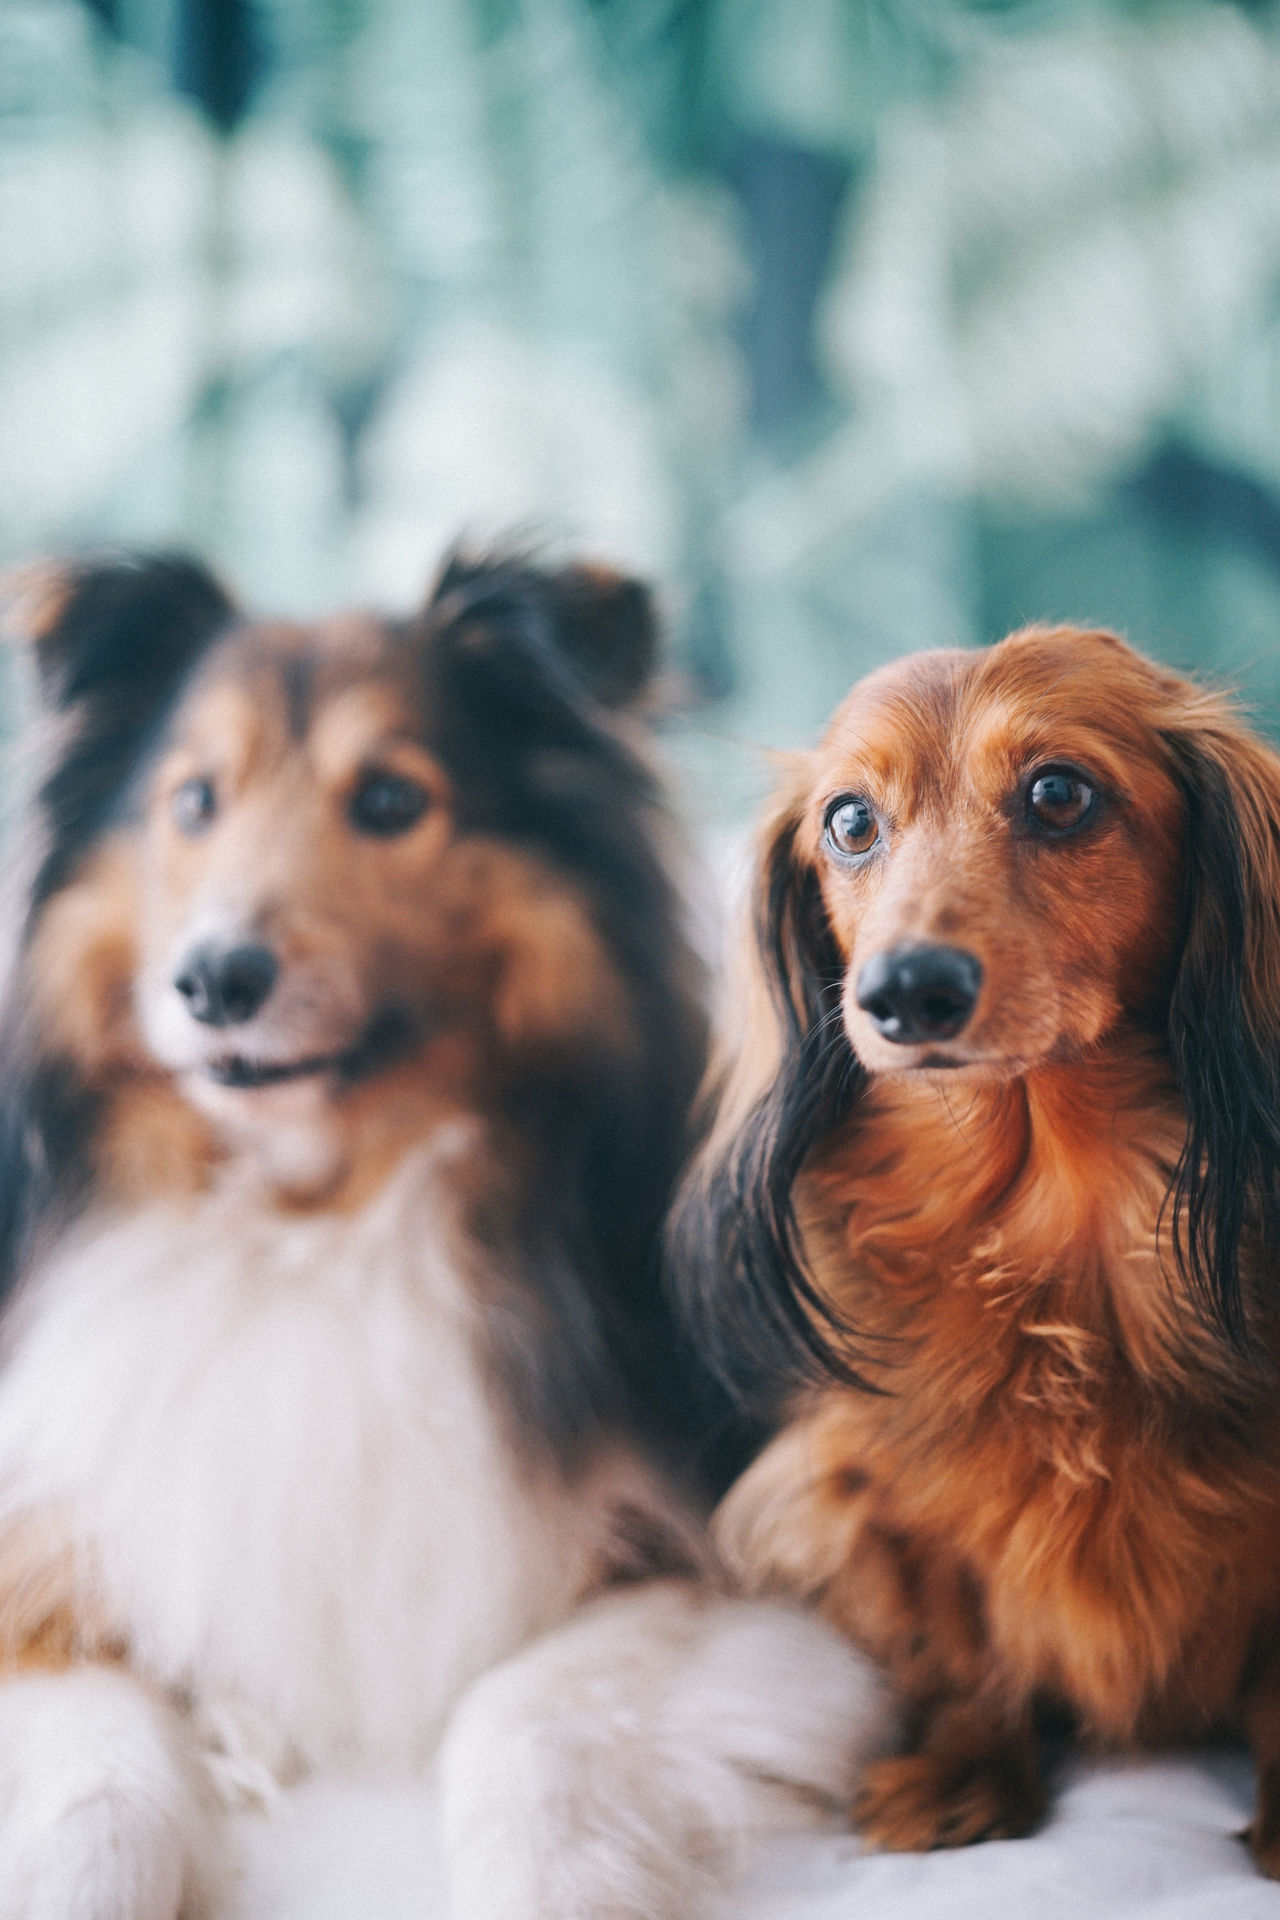 Animal Themes Brown Cavalier King Charles Spaniel Close-up Dachshund Day Dog Domestic Animals Focus On Foreground Indoors  Mammal No People Pets Sausagedog Sheepdog Sheltie Two Dogs